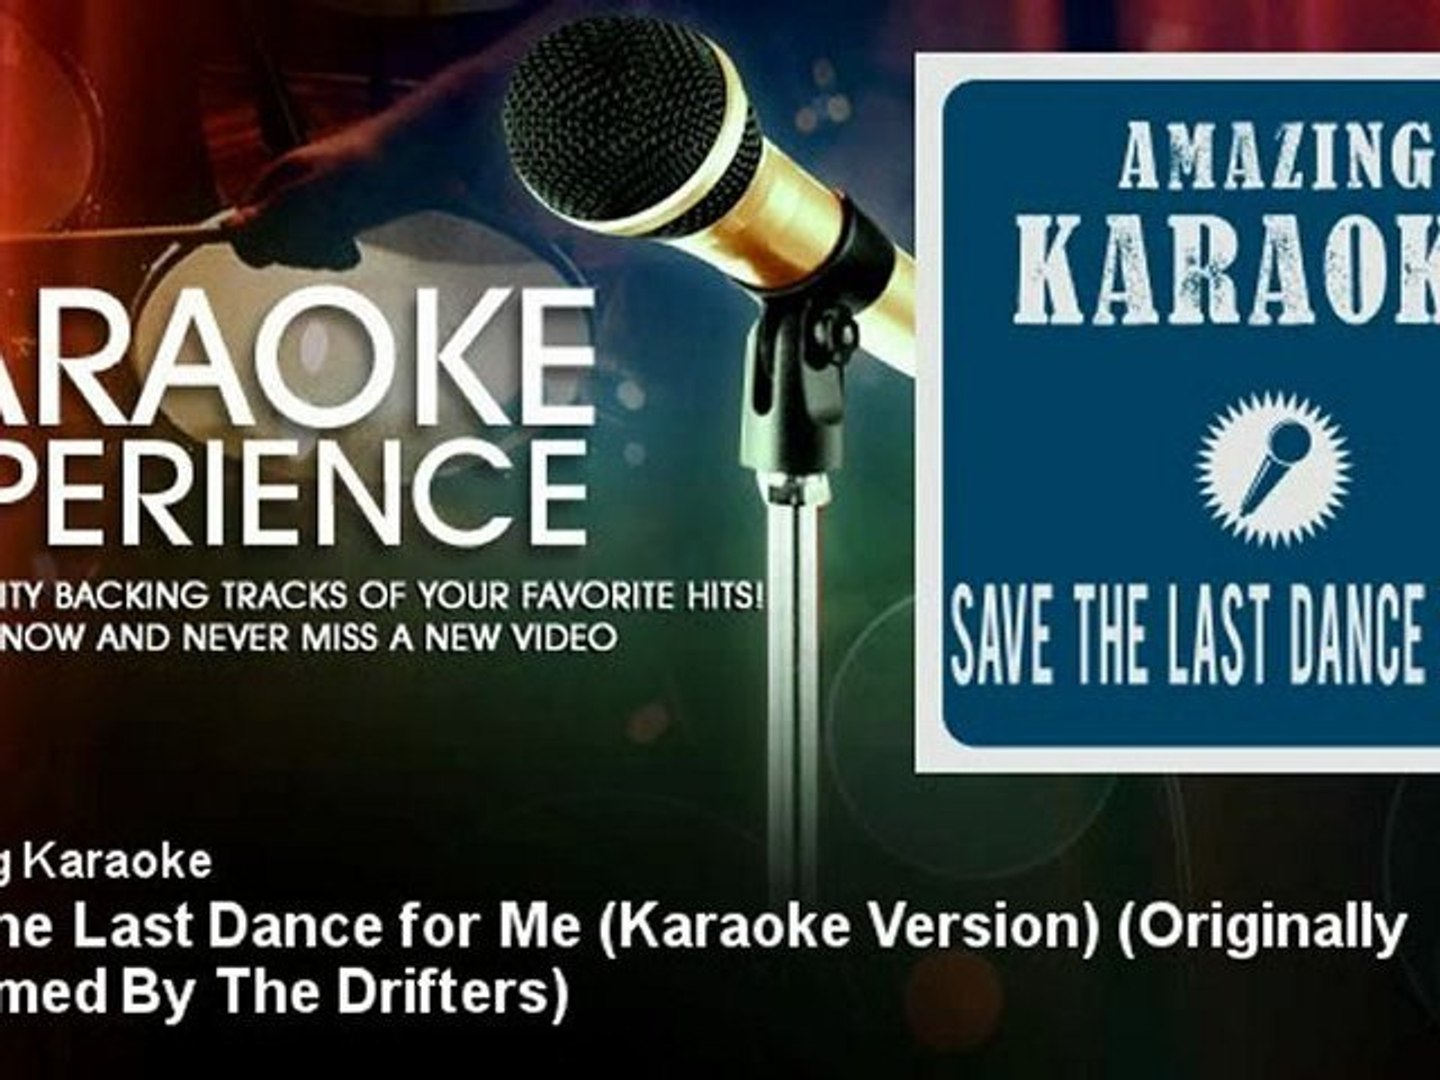 Amazing Karaoke - Save the Last Dance for Me (Karaoke Version)